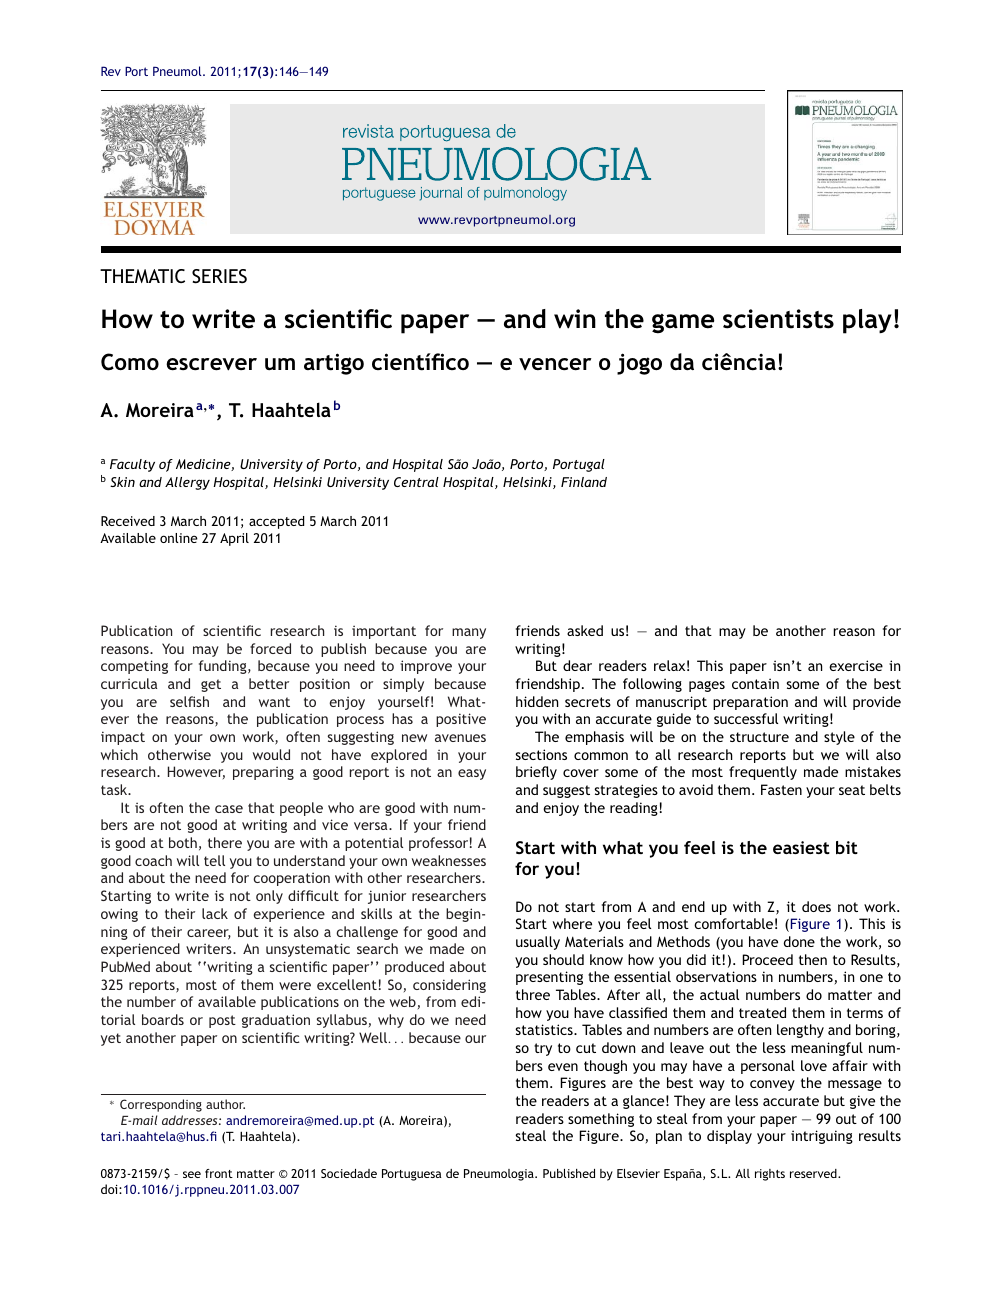 How to write a scientific paper – and win the game scientists play